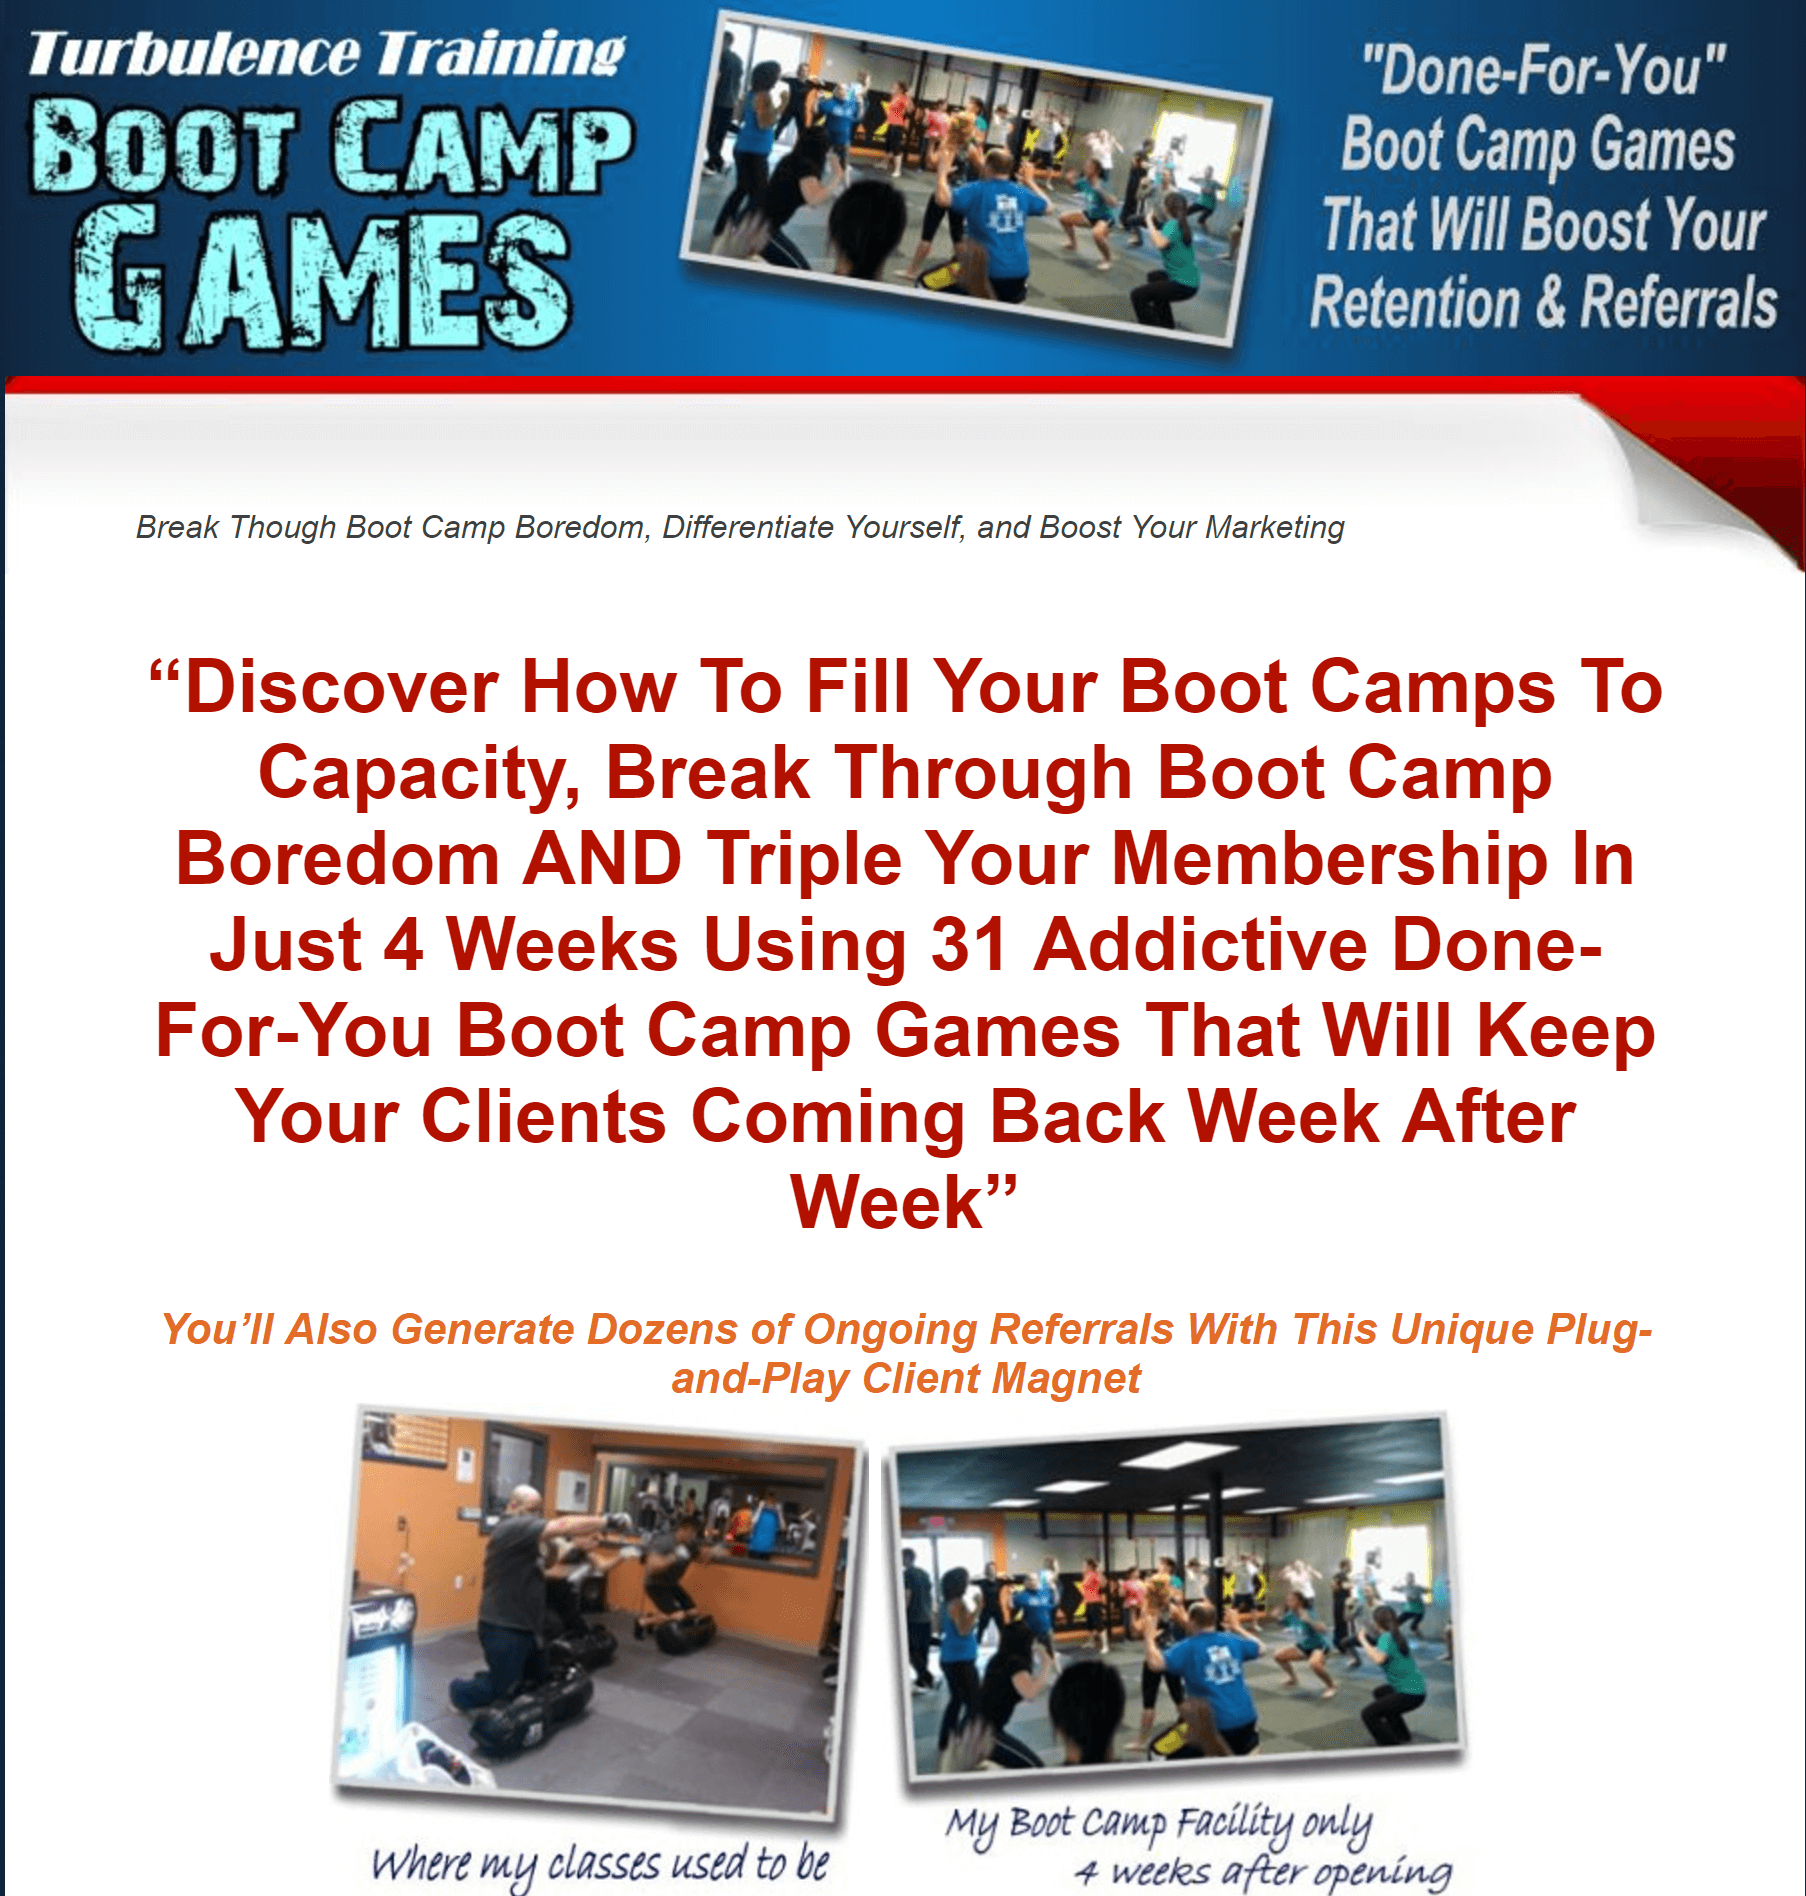 Turbulence Training Boot Camp Games -exercising made fun